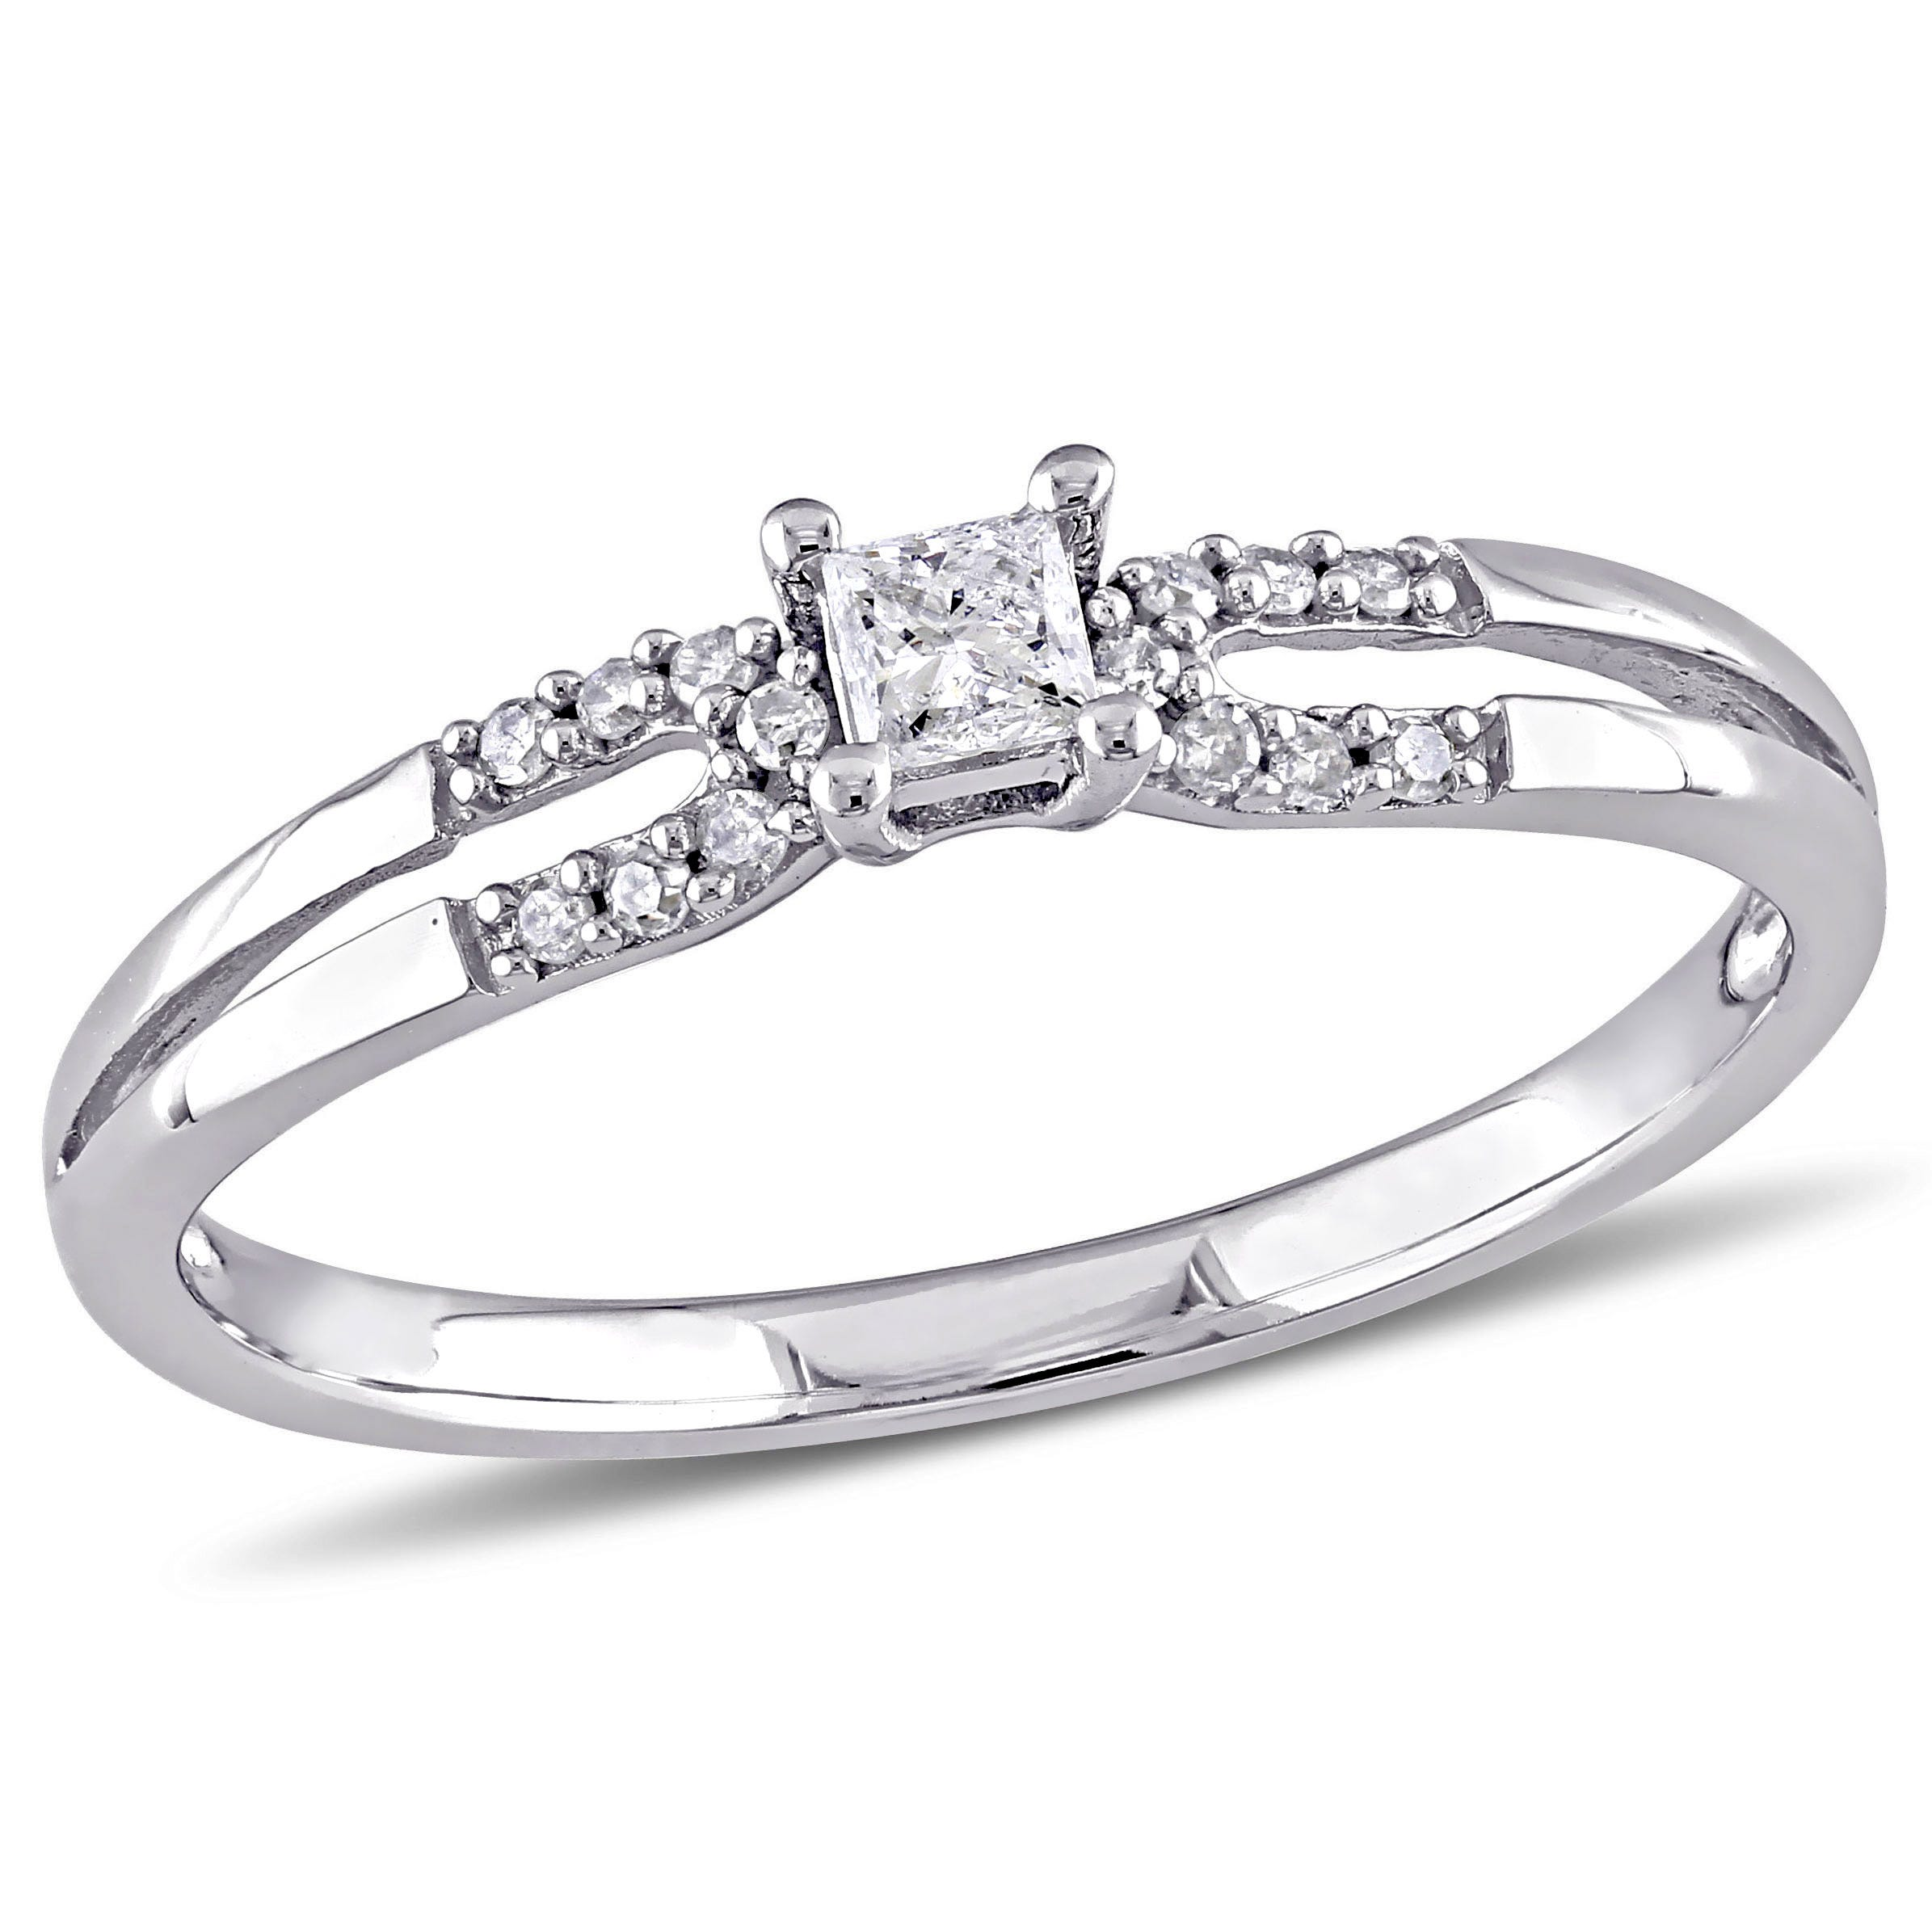 Princess & Round Cut Diamond Promise Ring 1/6ctw. in 10k White Gold